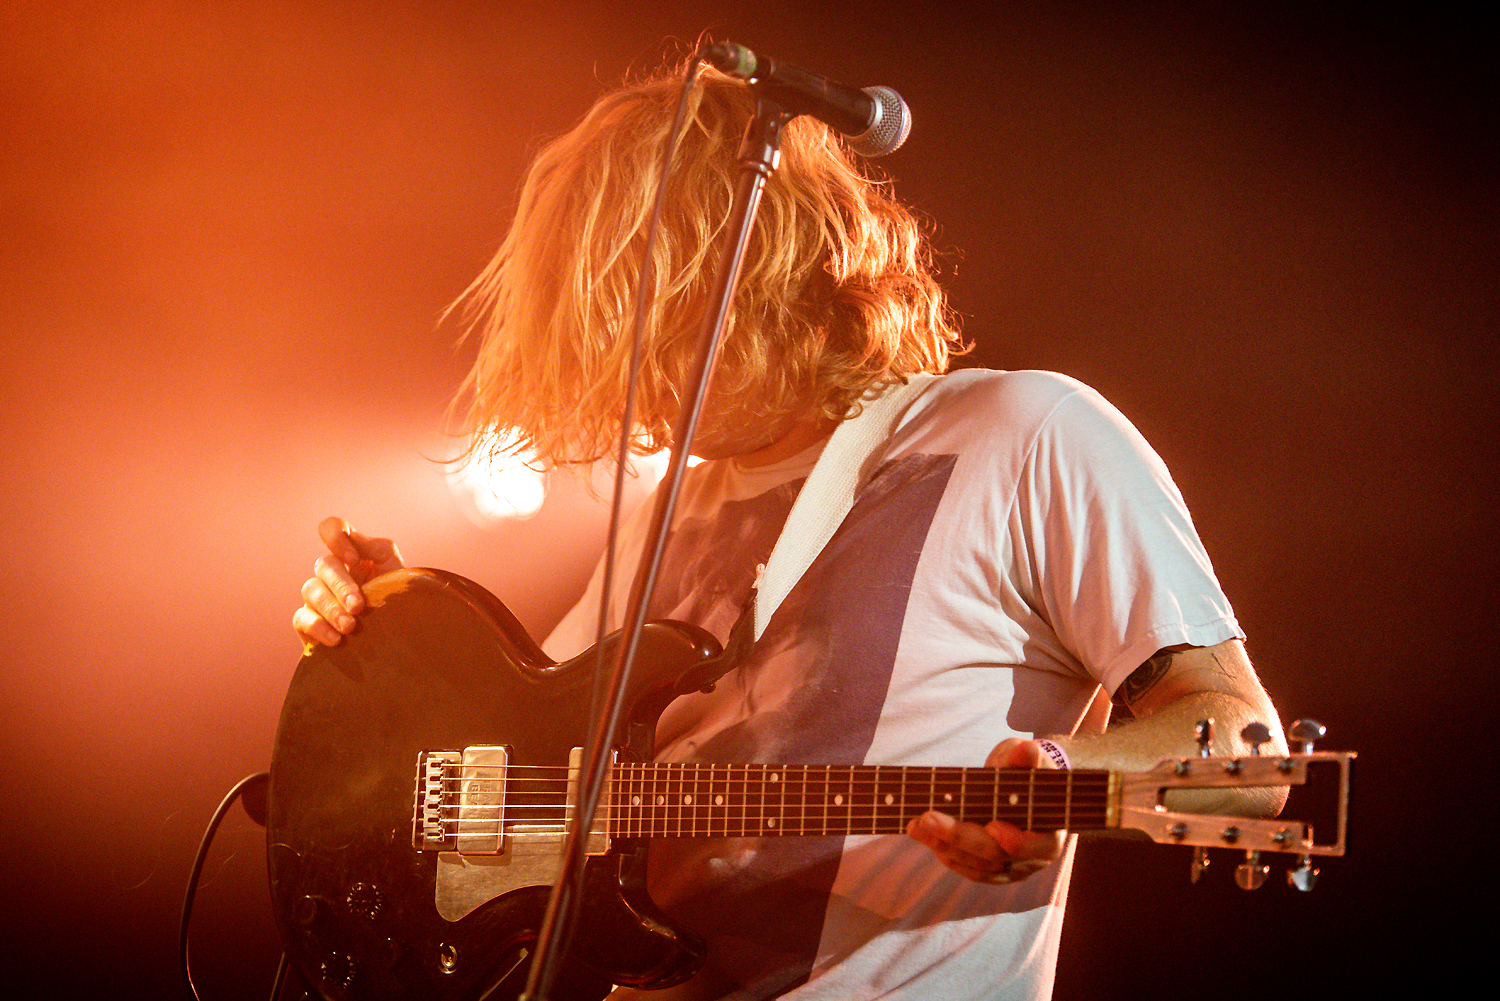 Ty Segall & The Freedom Band @ Best Kept Secret 2018 (Jan Van den Bulck)